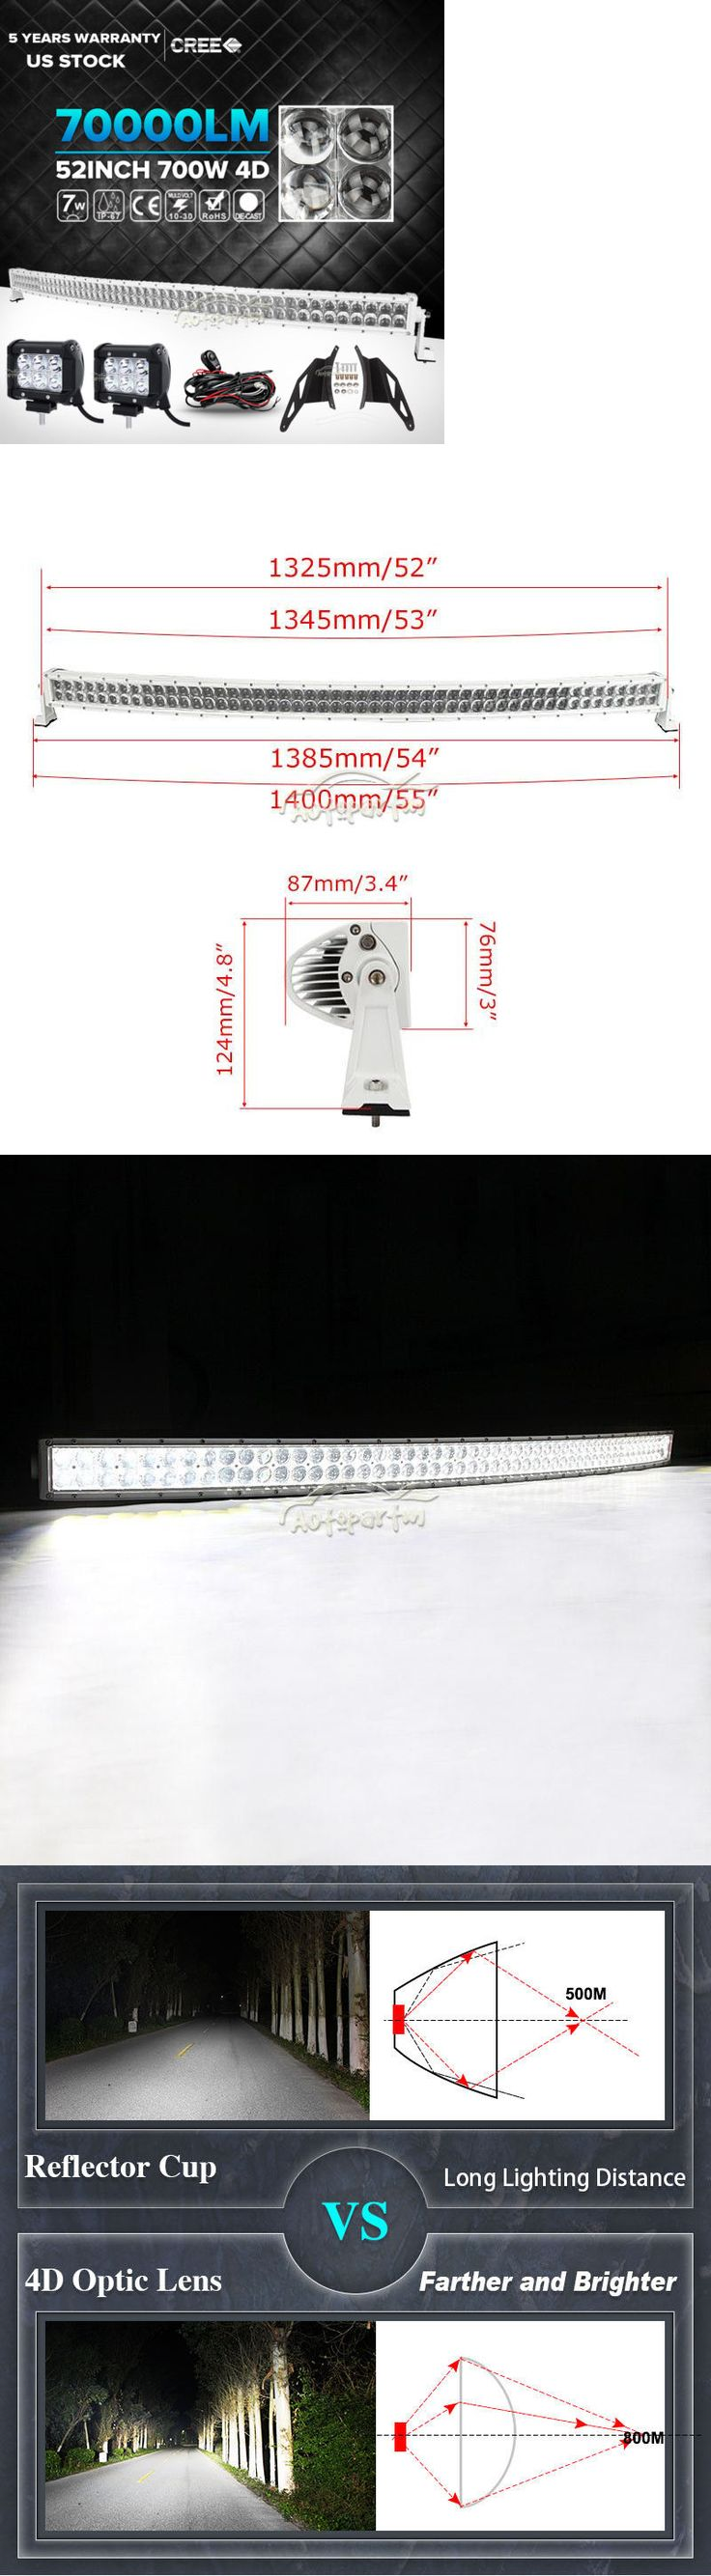 Car Lighting: 4D 52Inch 700W+2X 4 18W Curved Led Light Bar+Mount Brackets Fit Ford F150 White -> BUY IT NOW ONLY: $149.59 on eBay!